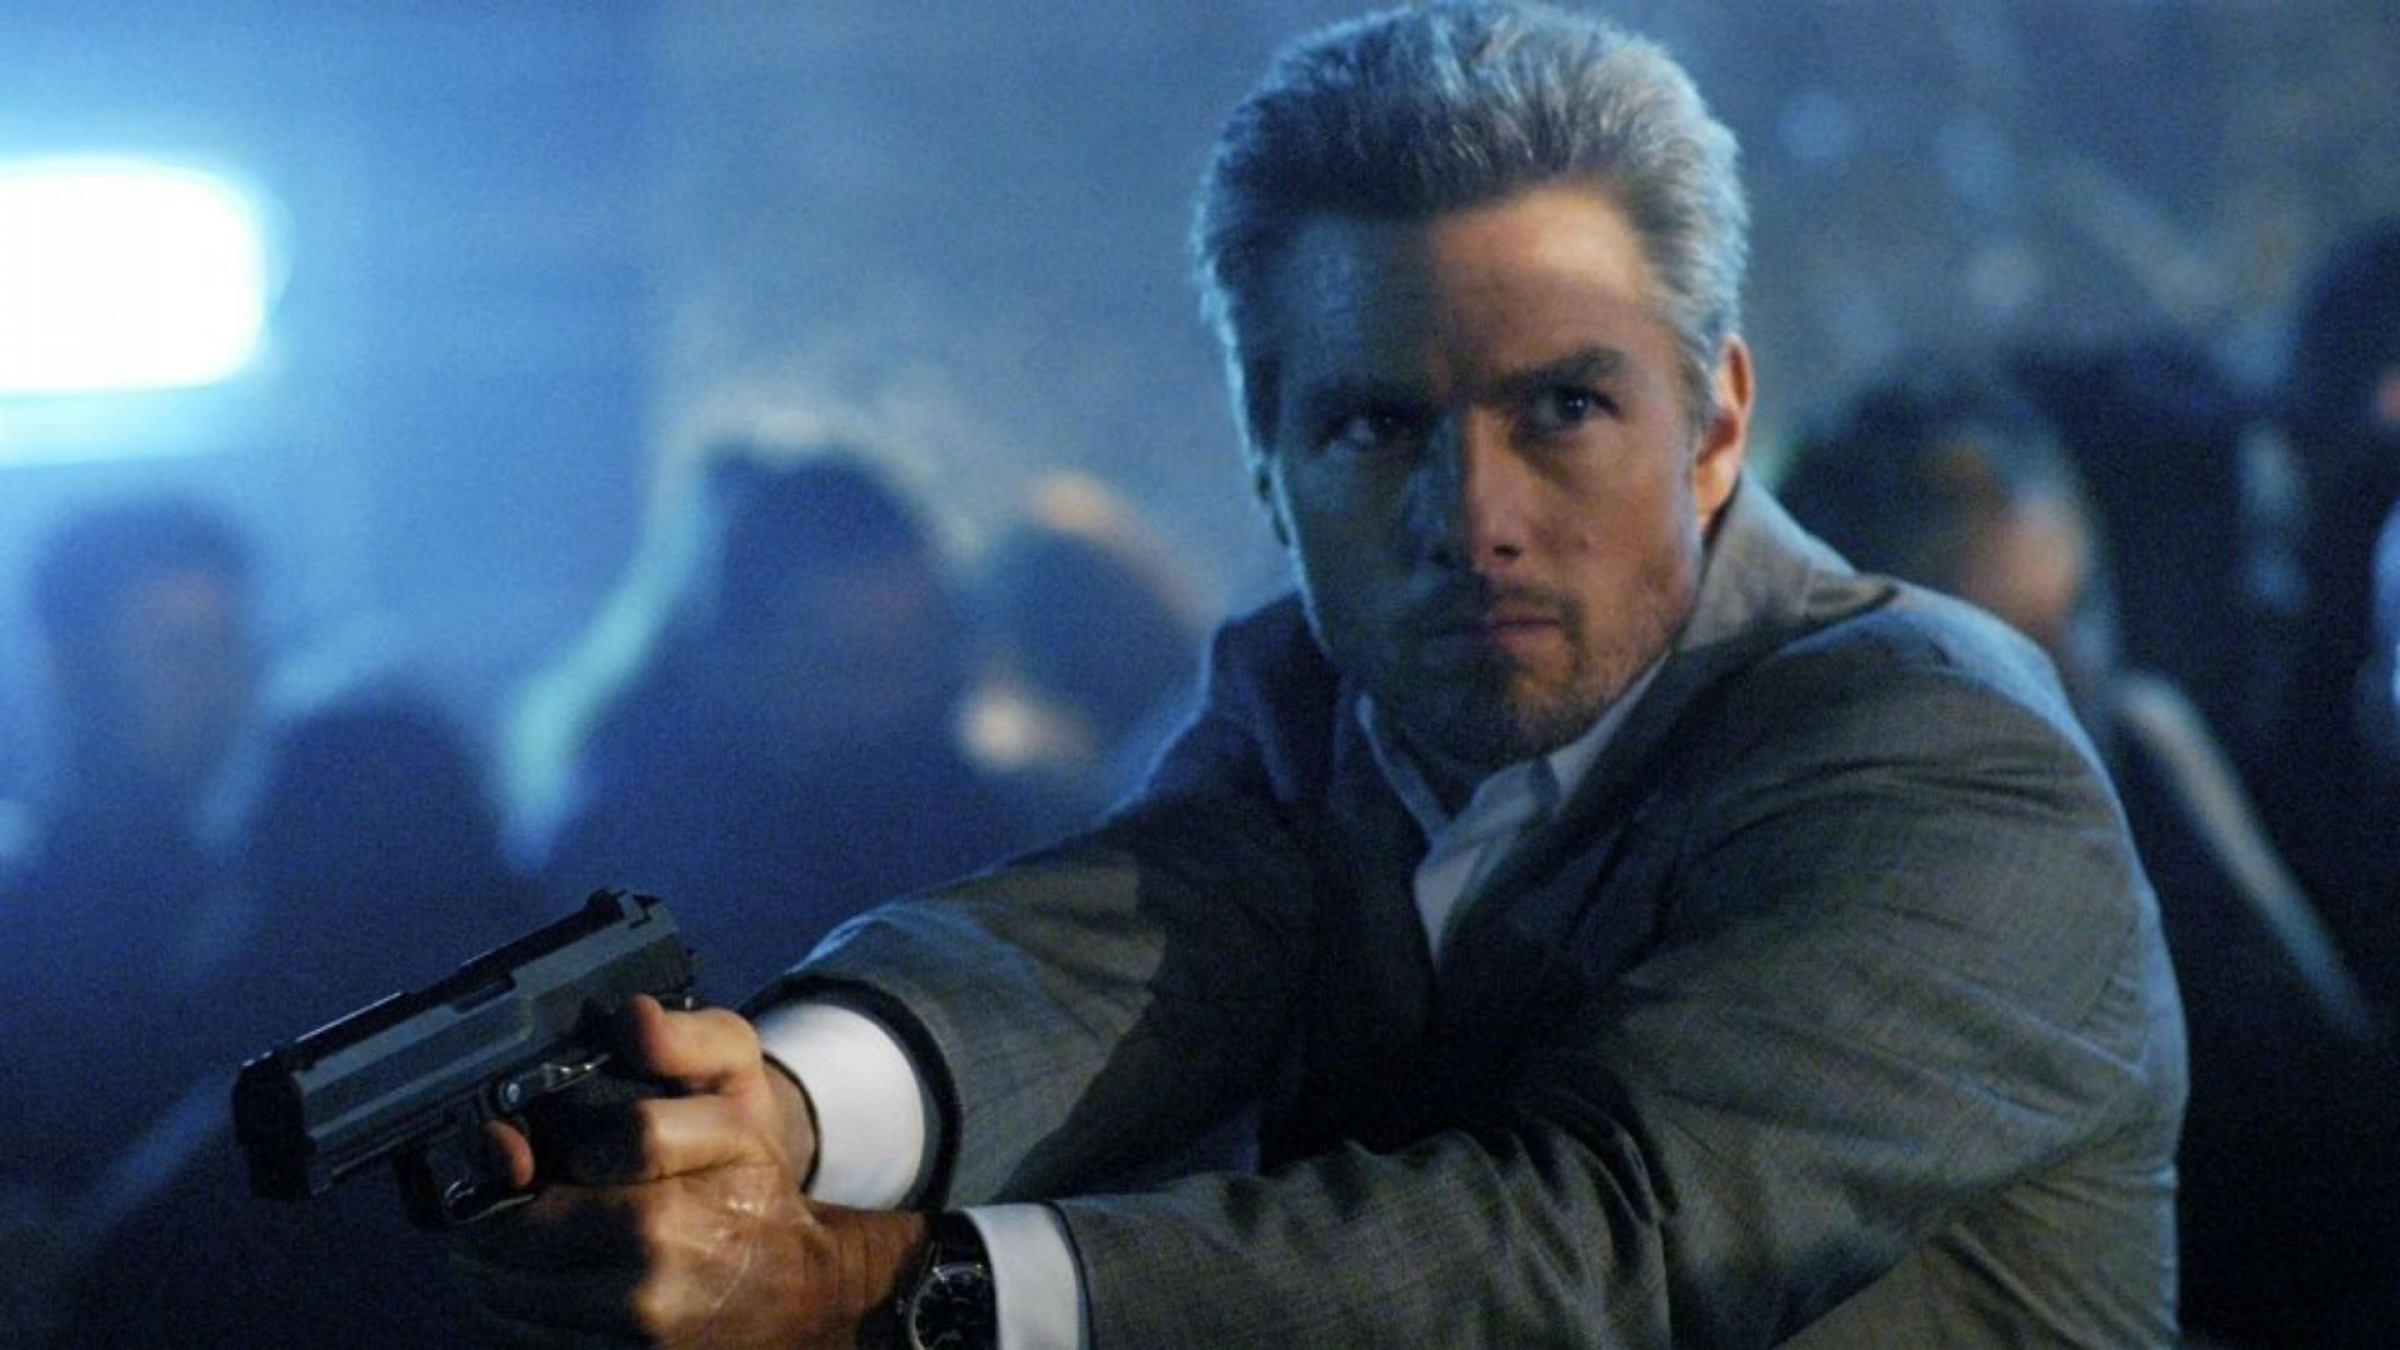 Tom Cruise in the 2004 Michael Mann film Collateral